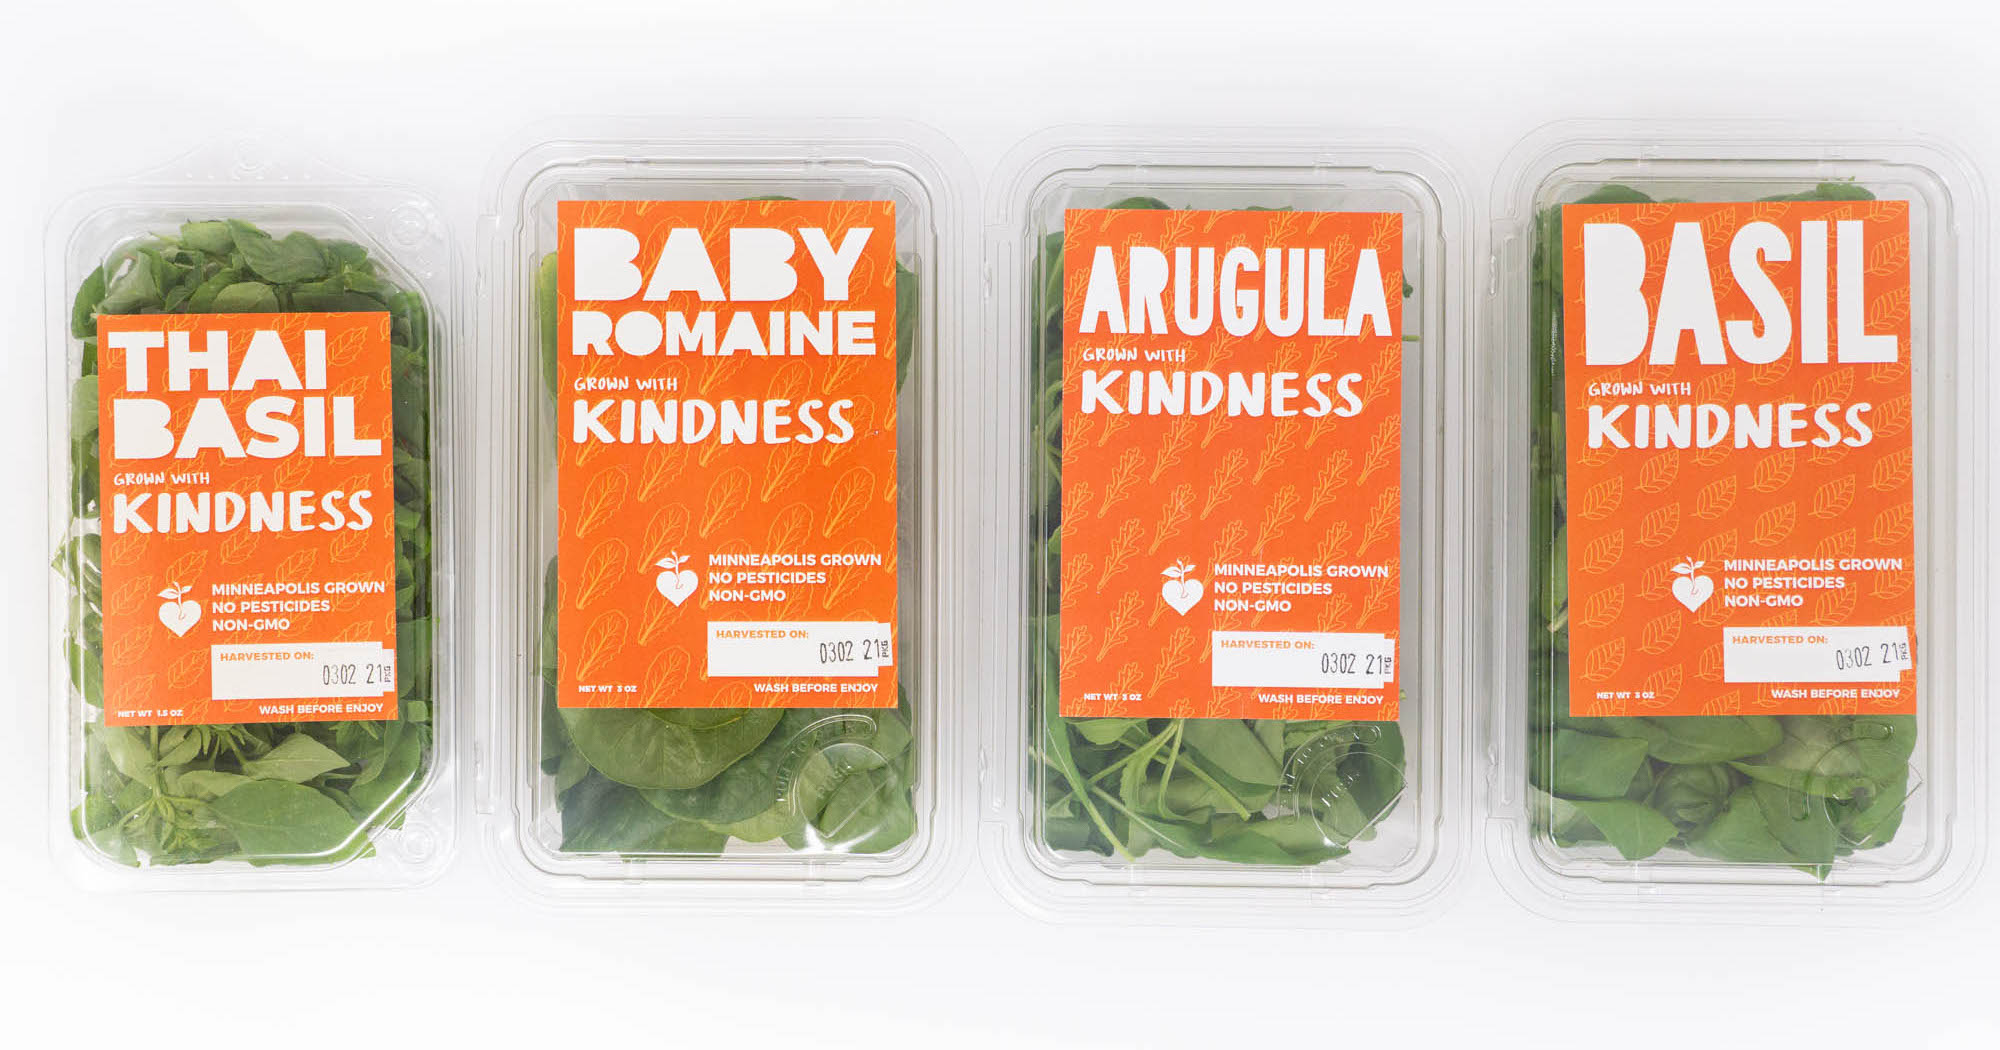 Kindness product in packaging: Thai basil, baby romaine, arugula, basil